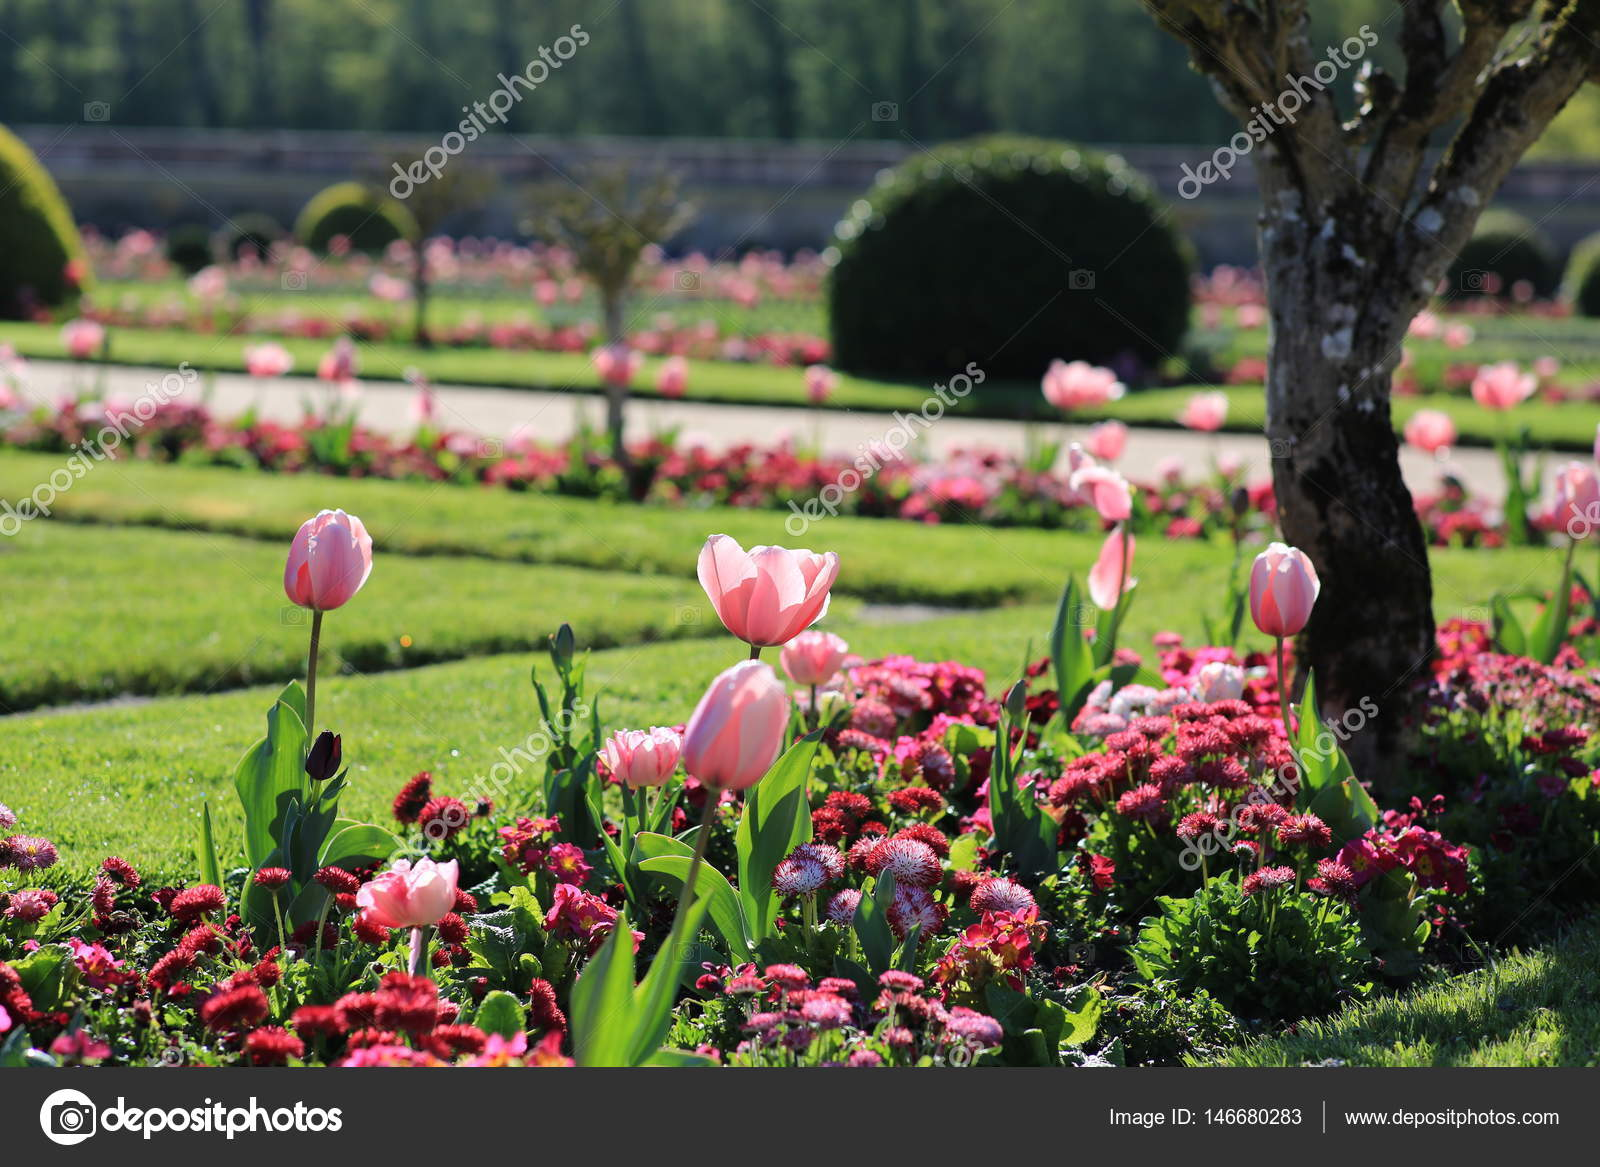 S&le of landscape design with tulips \u2014 Stock Photo & sample of landscape design with tulips \u2014 Stock Photo © telev #146680283